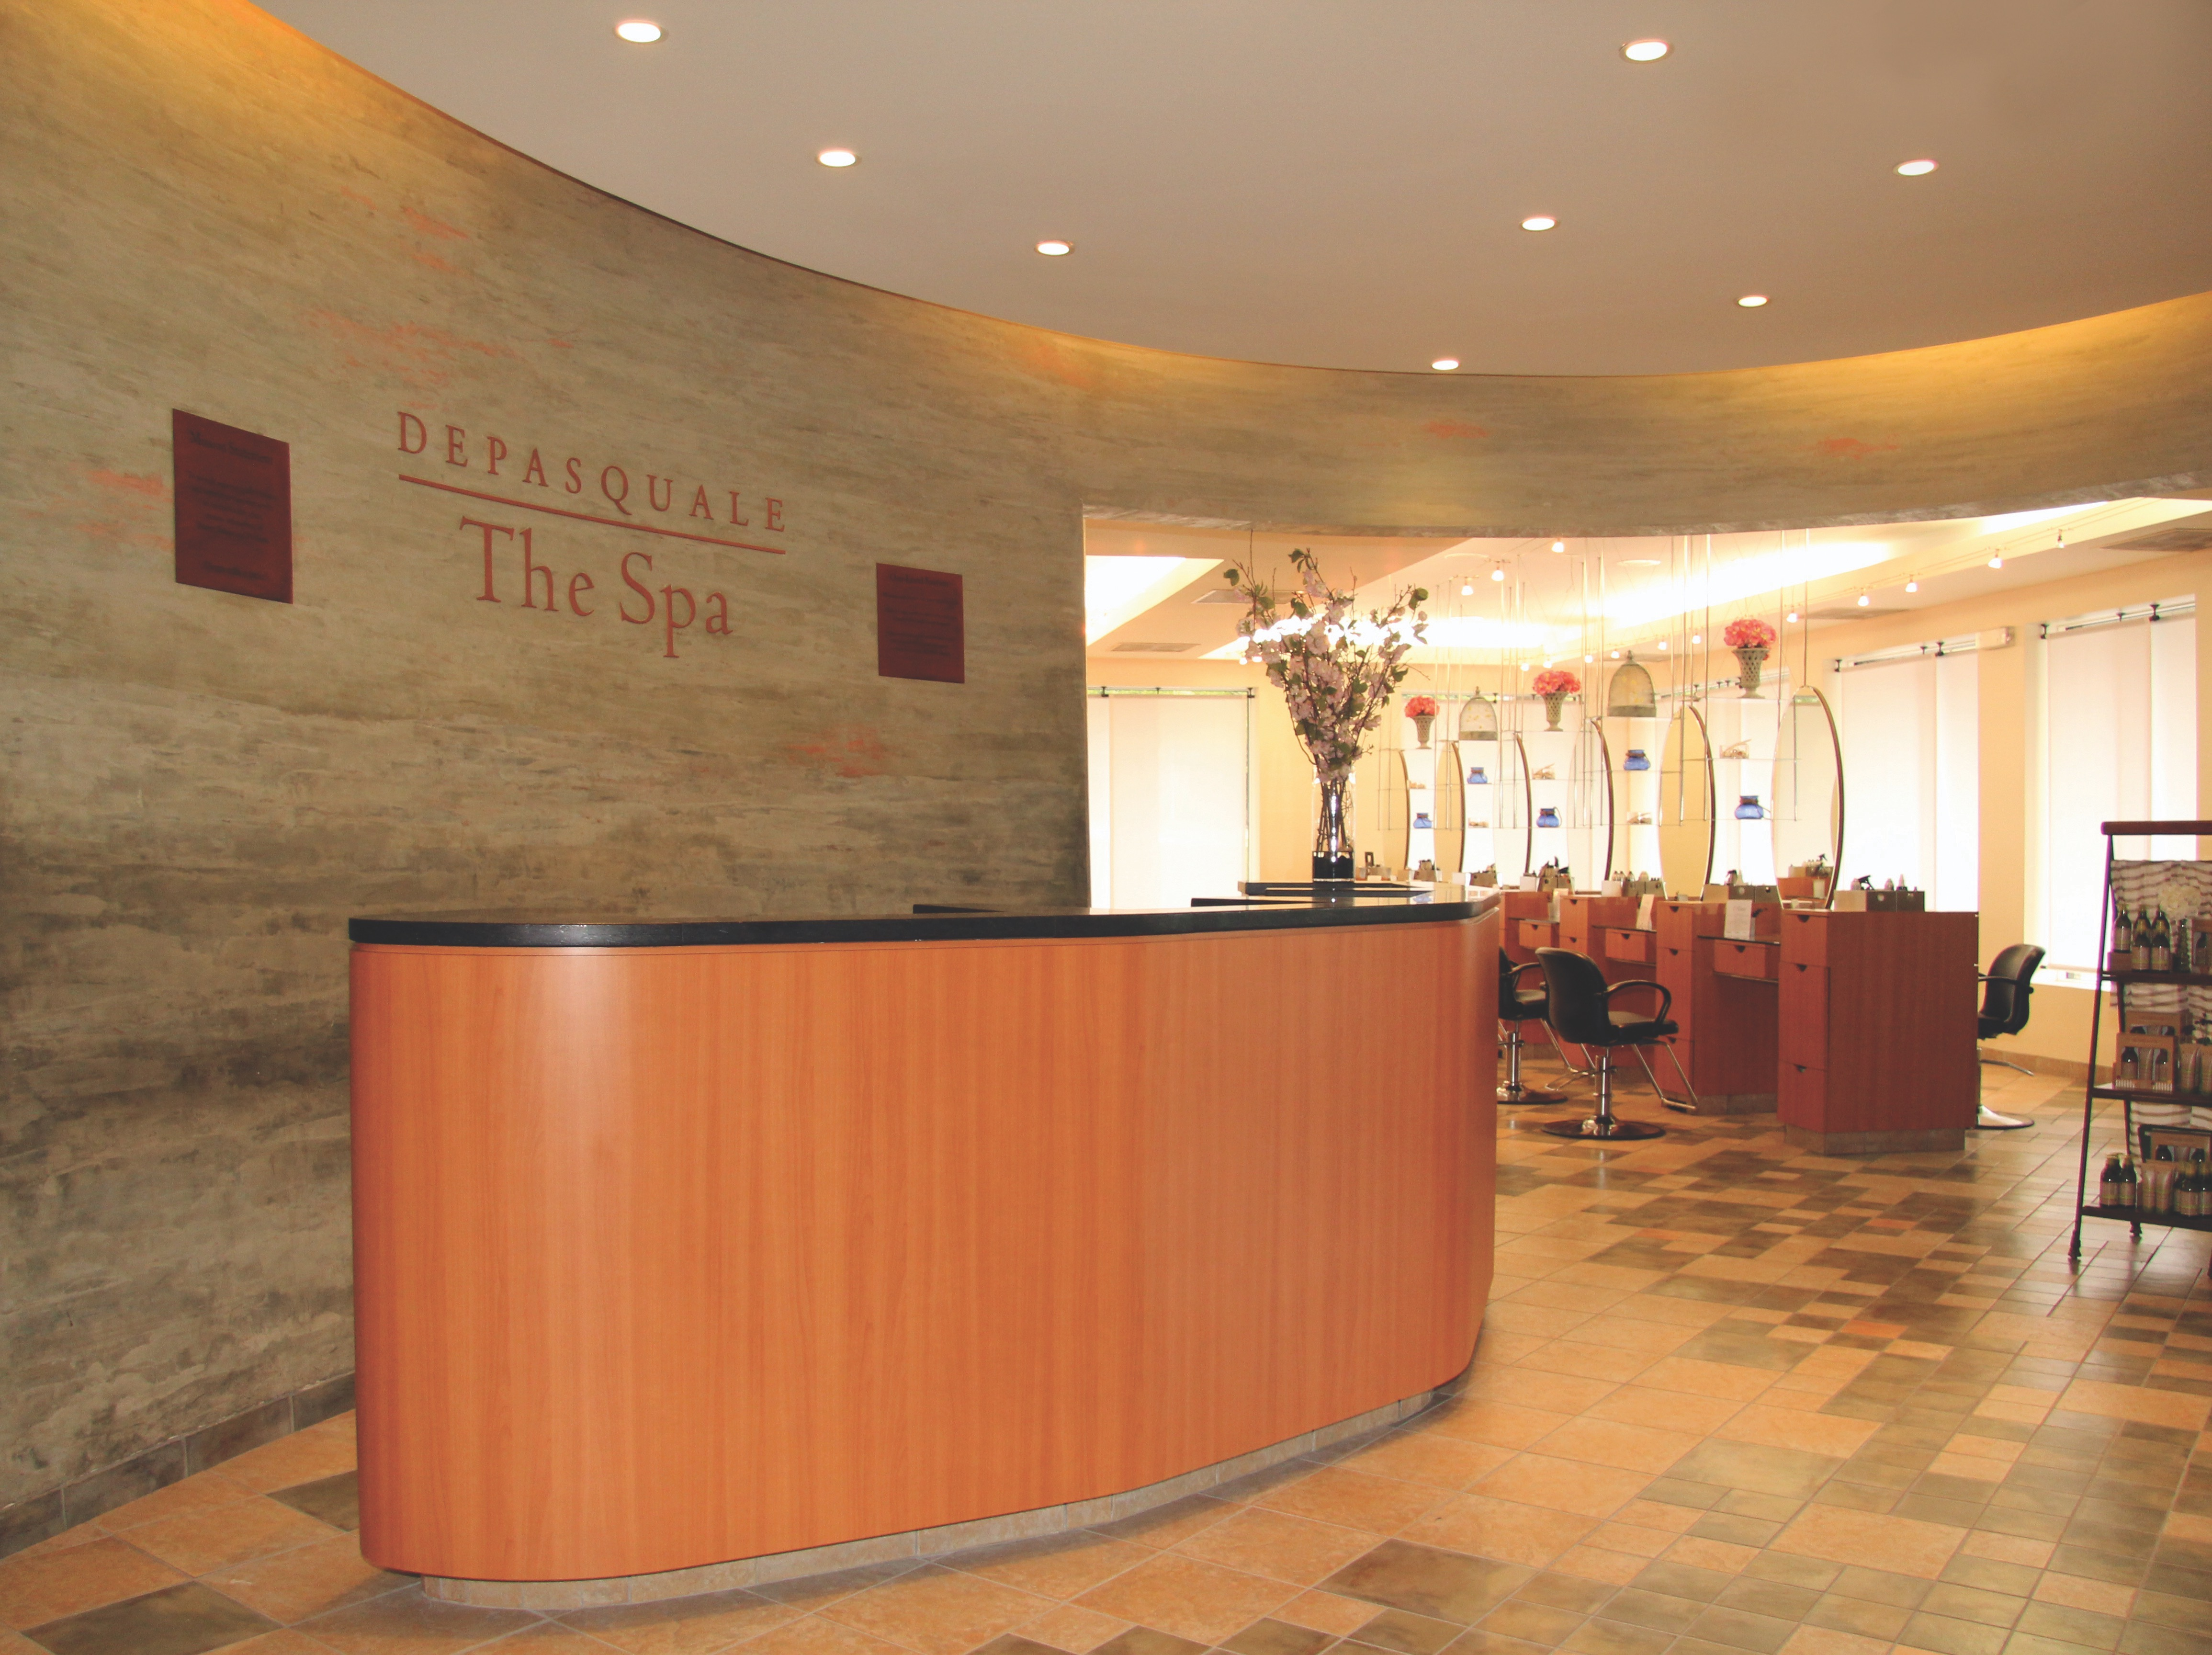 the montclair dispatch local news and events for the greater depasquale the spa rolls out the royal treatment